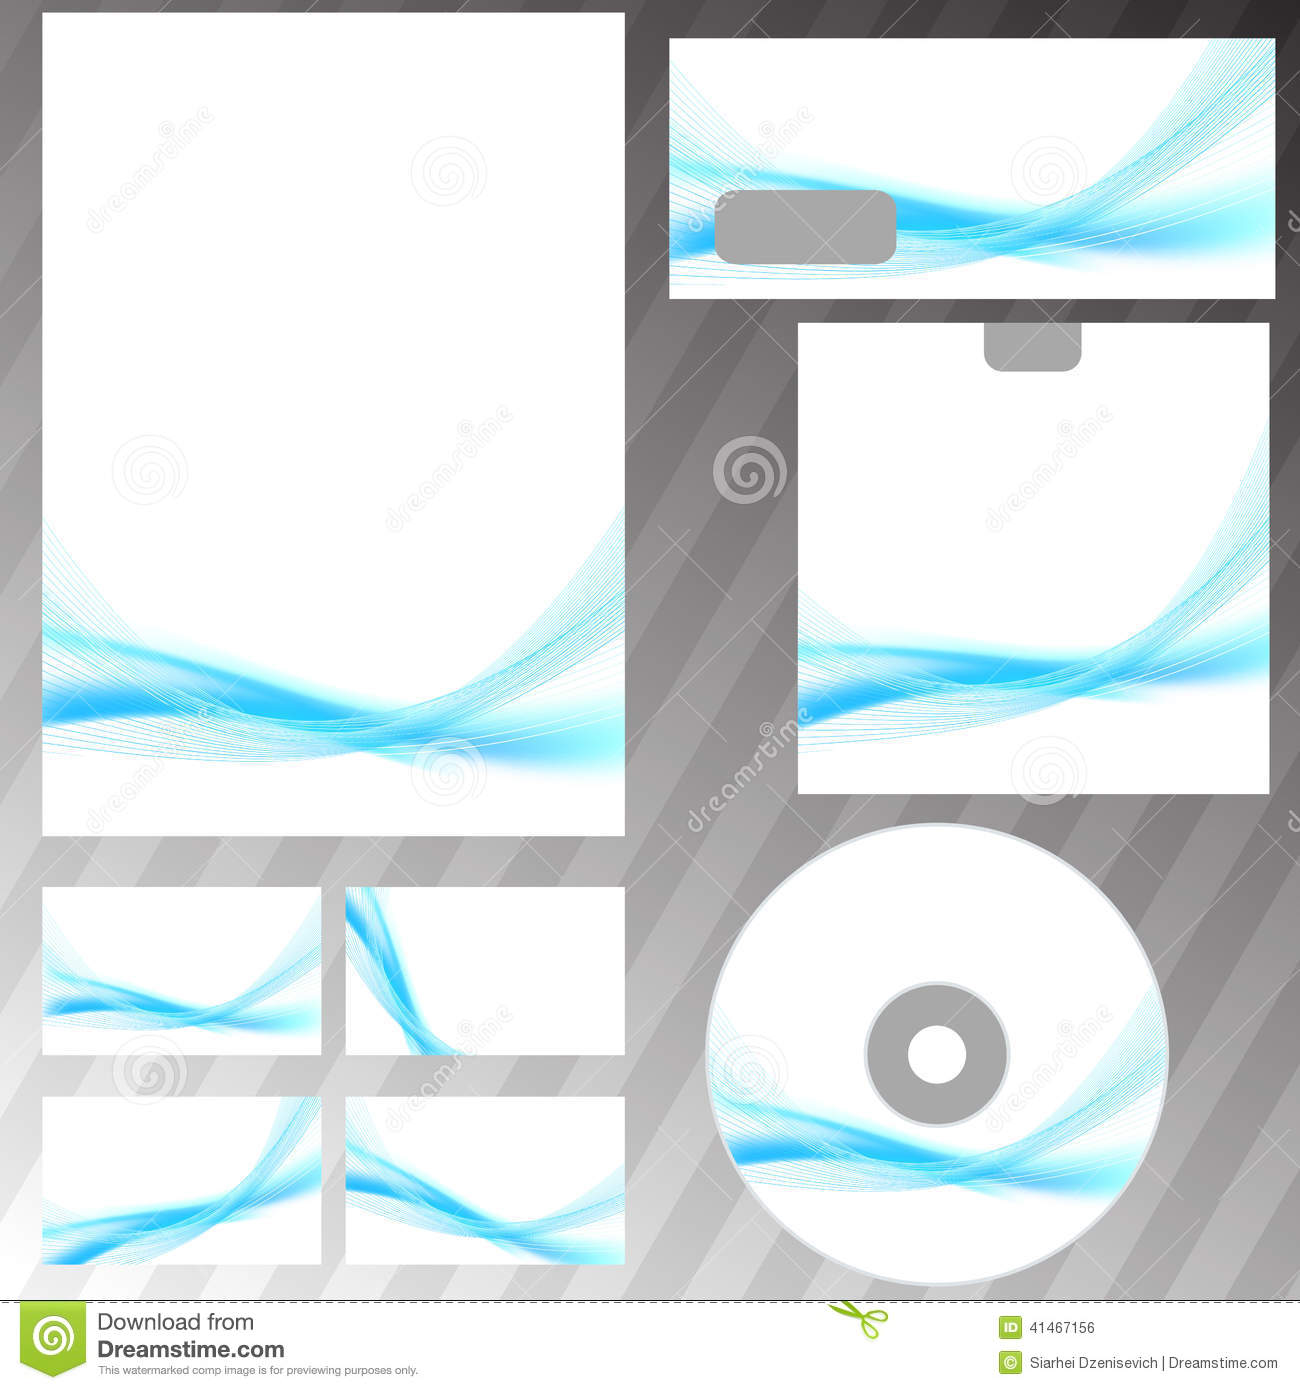 Bright blue swoosh abstract stationery set